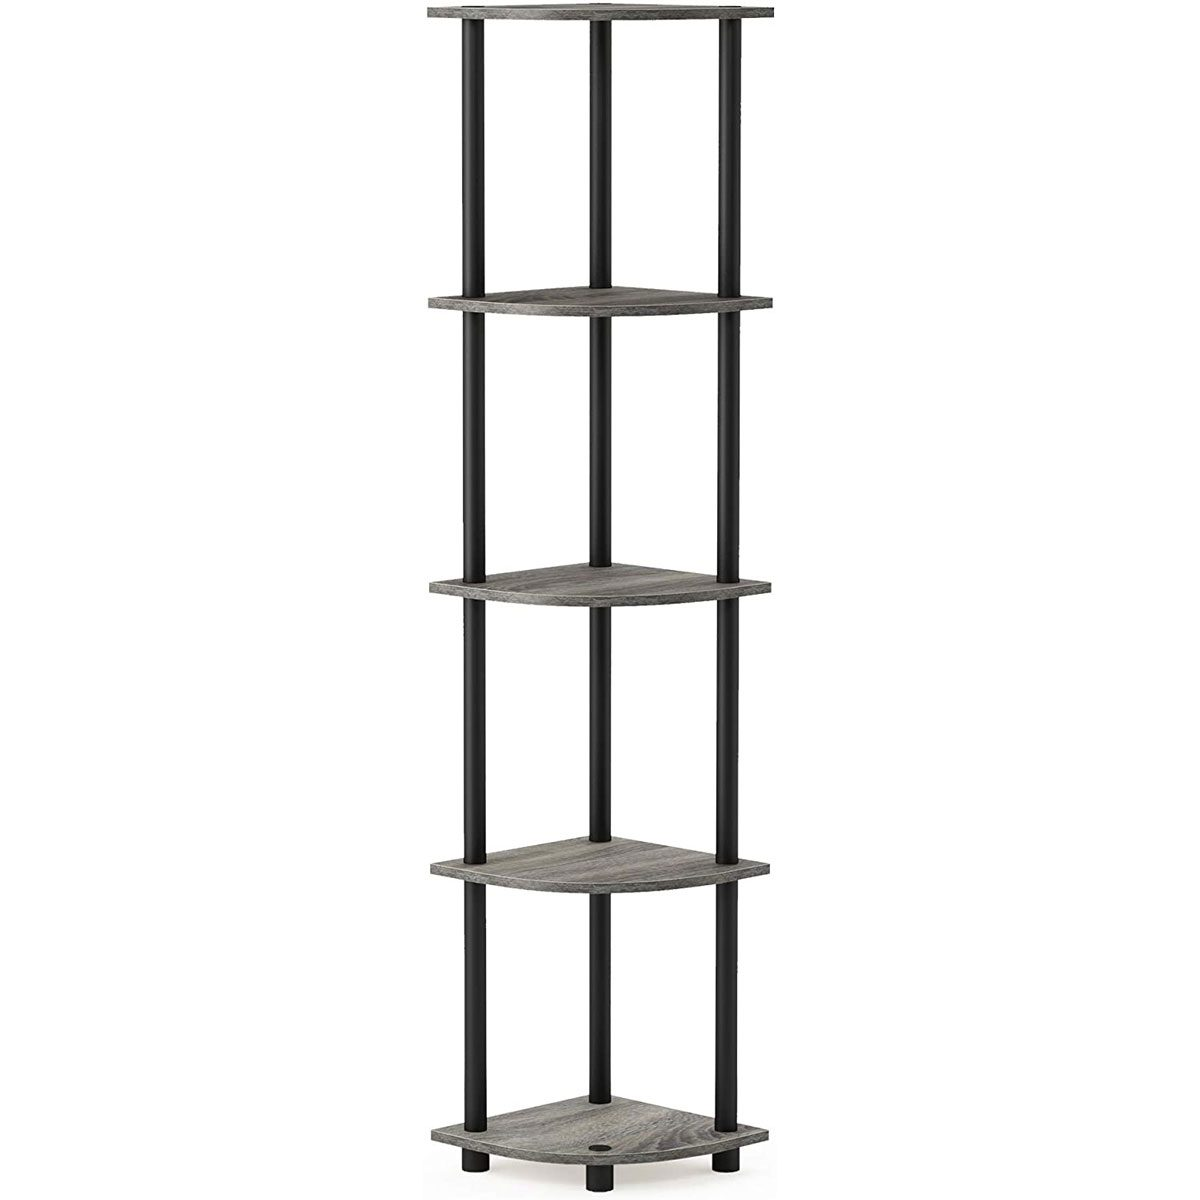 Corner shelf tower